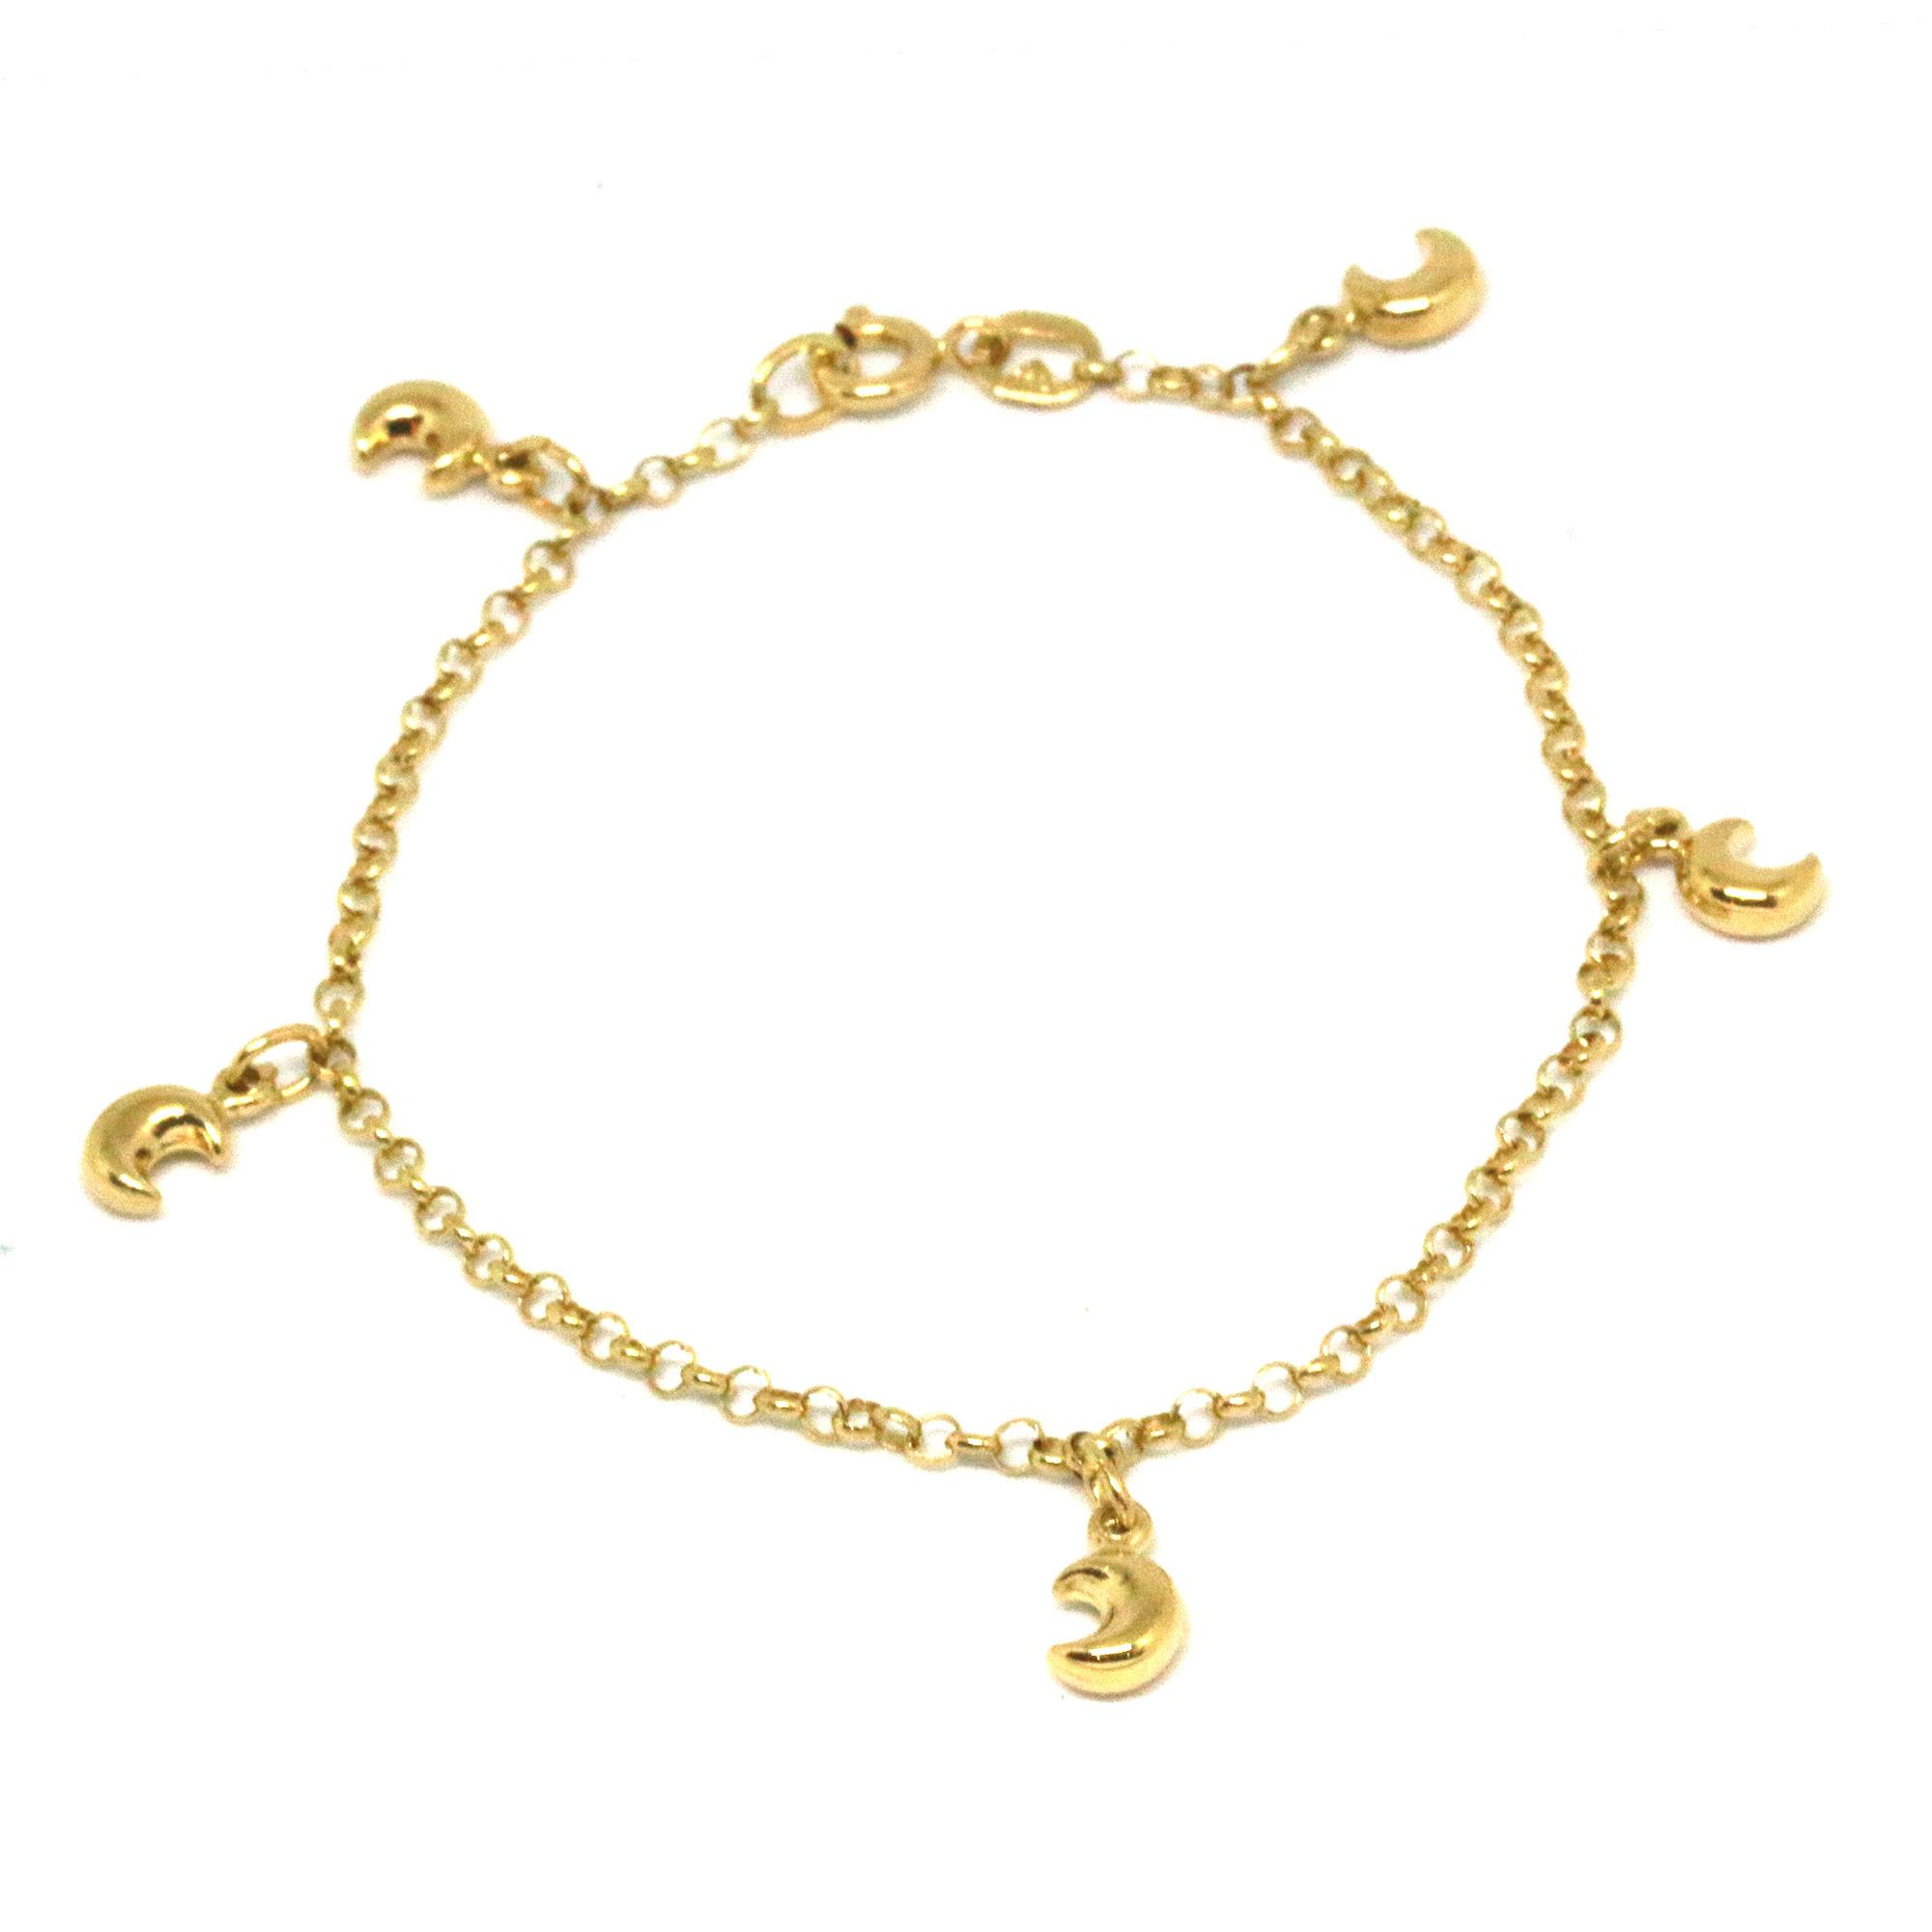 simply gold walmart anklet yellow karat com ip rope